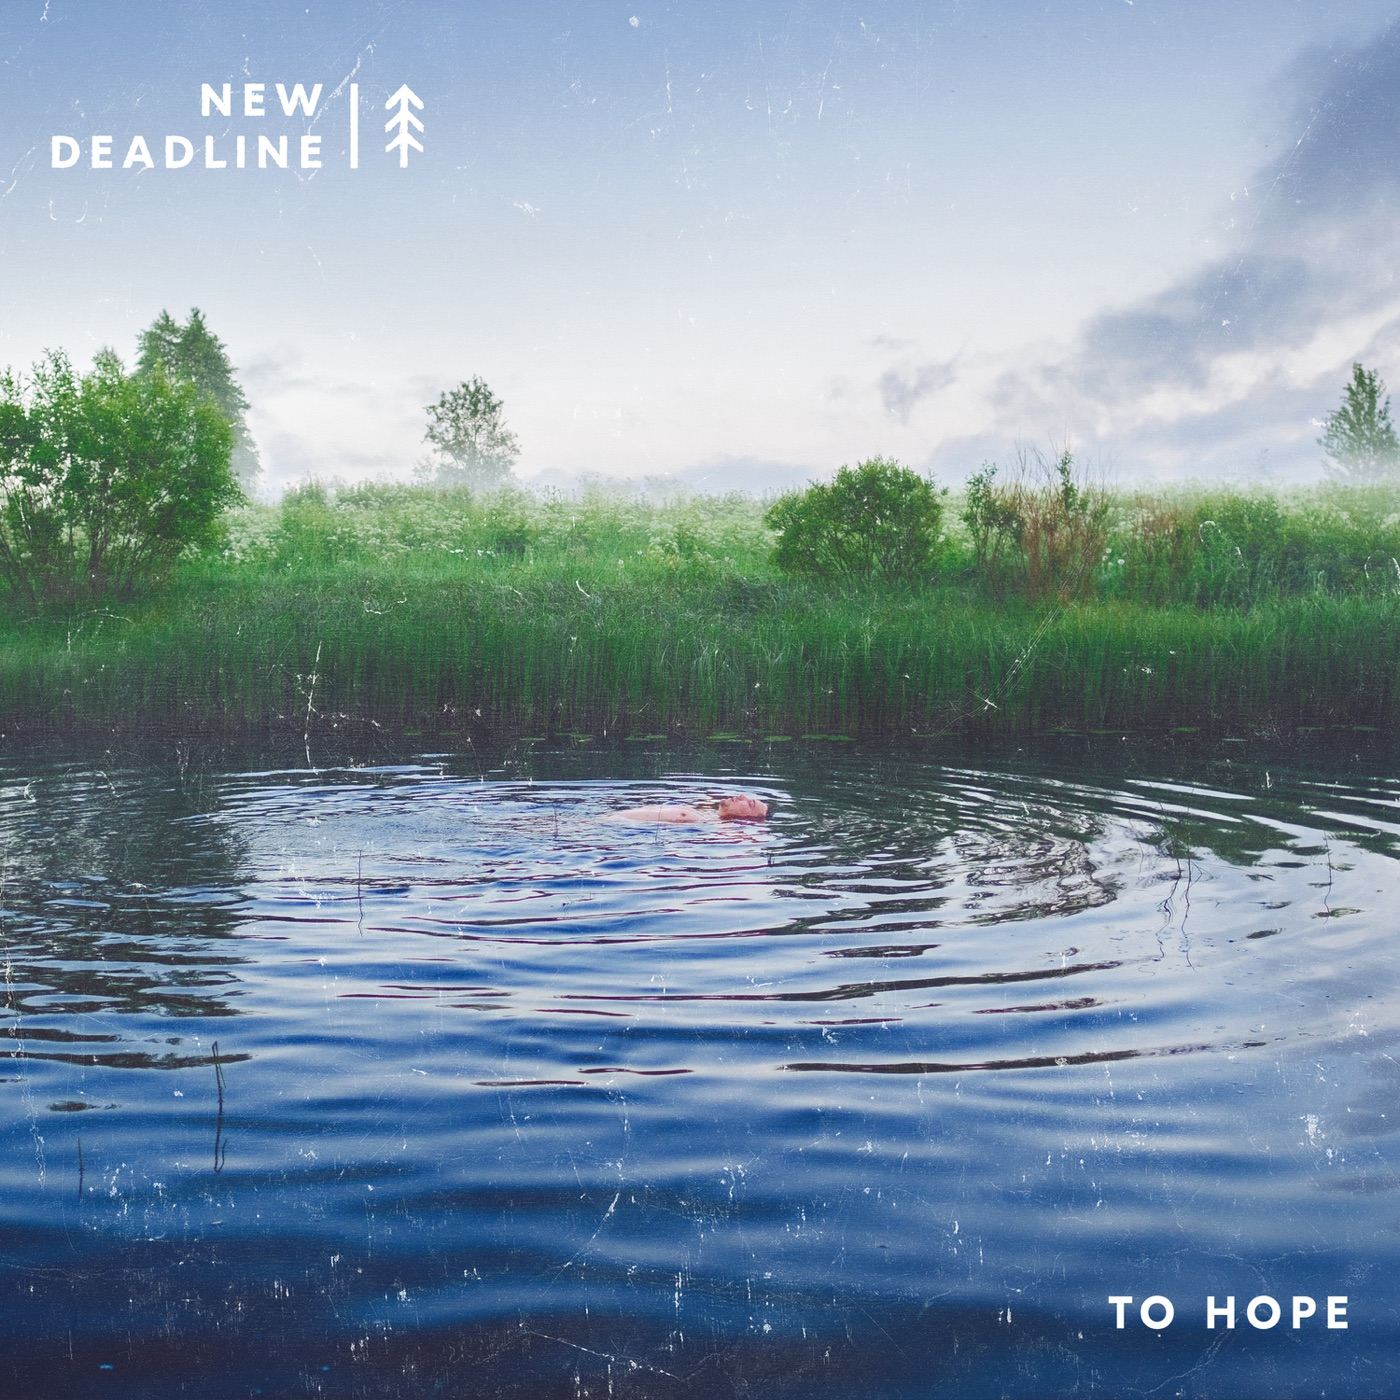 New Deadline - To Hope (2018)